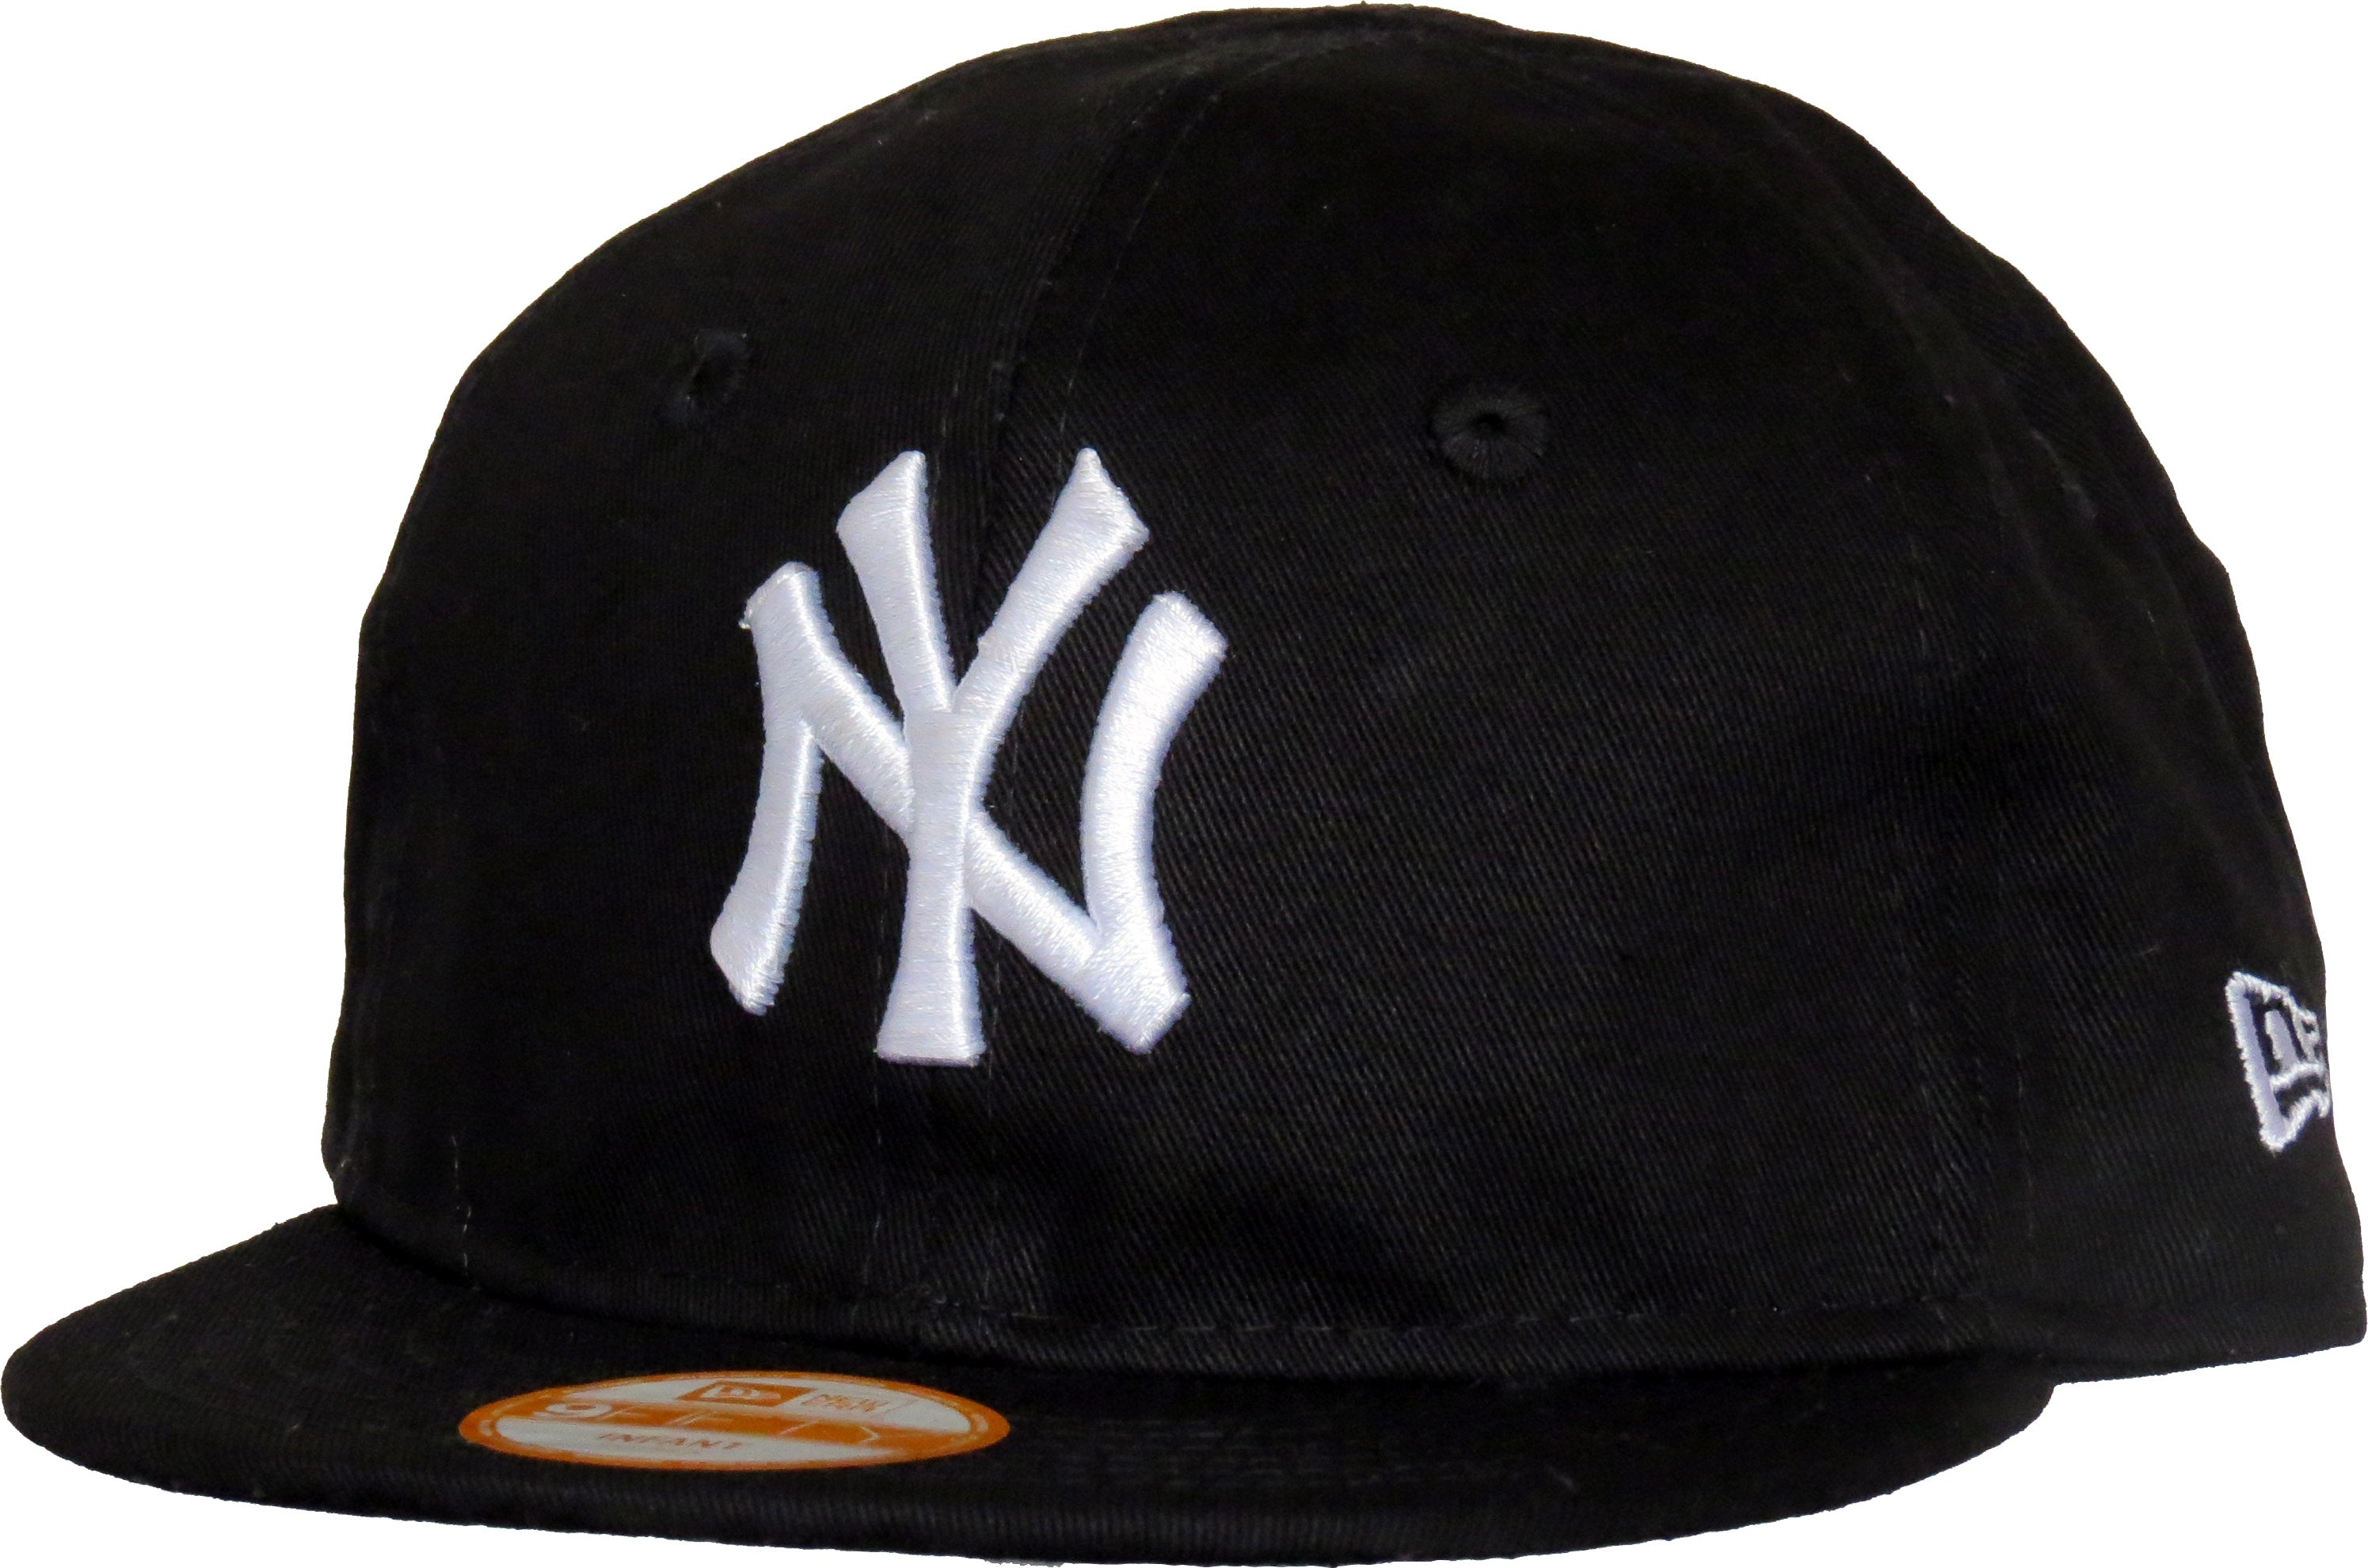 3bef14e488f New Era 950 My 1st NY Yankees Infant Black Snapback Cap ( 0 - 2 years –  lovemycap